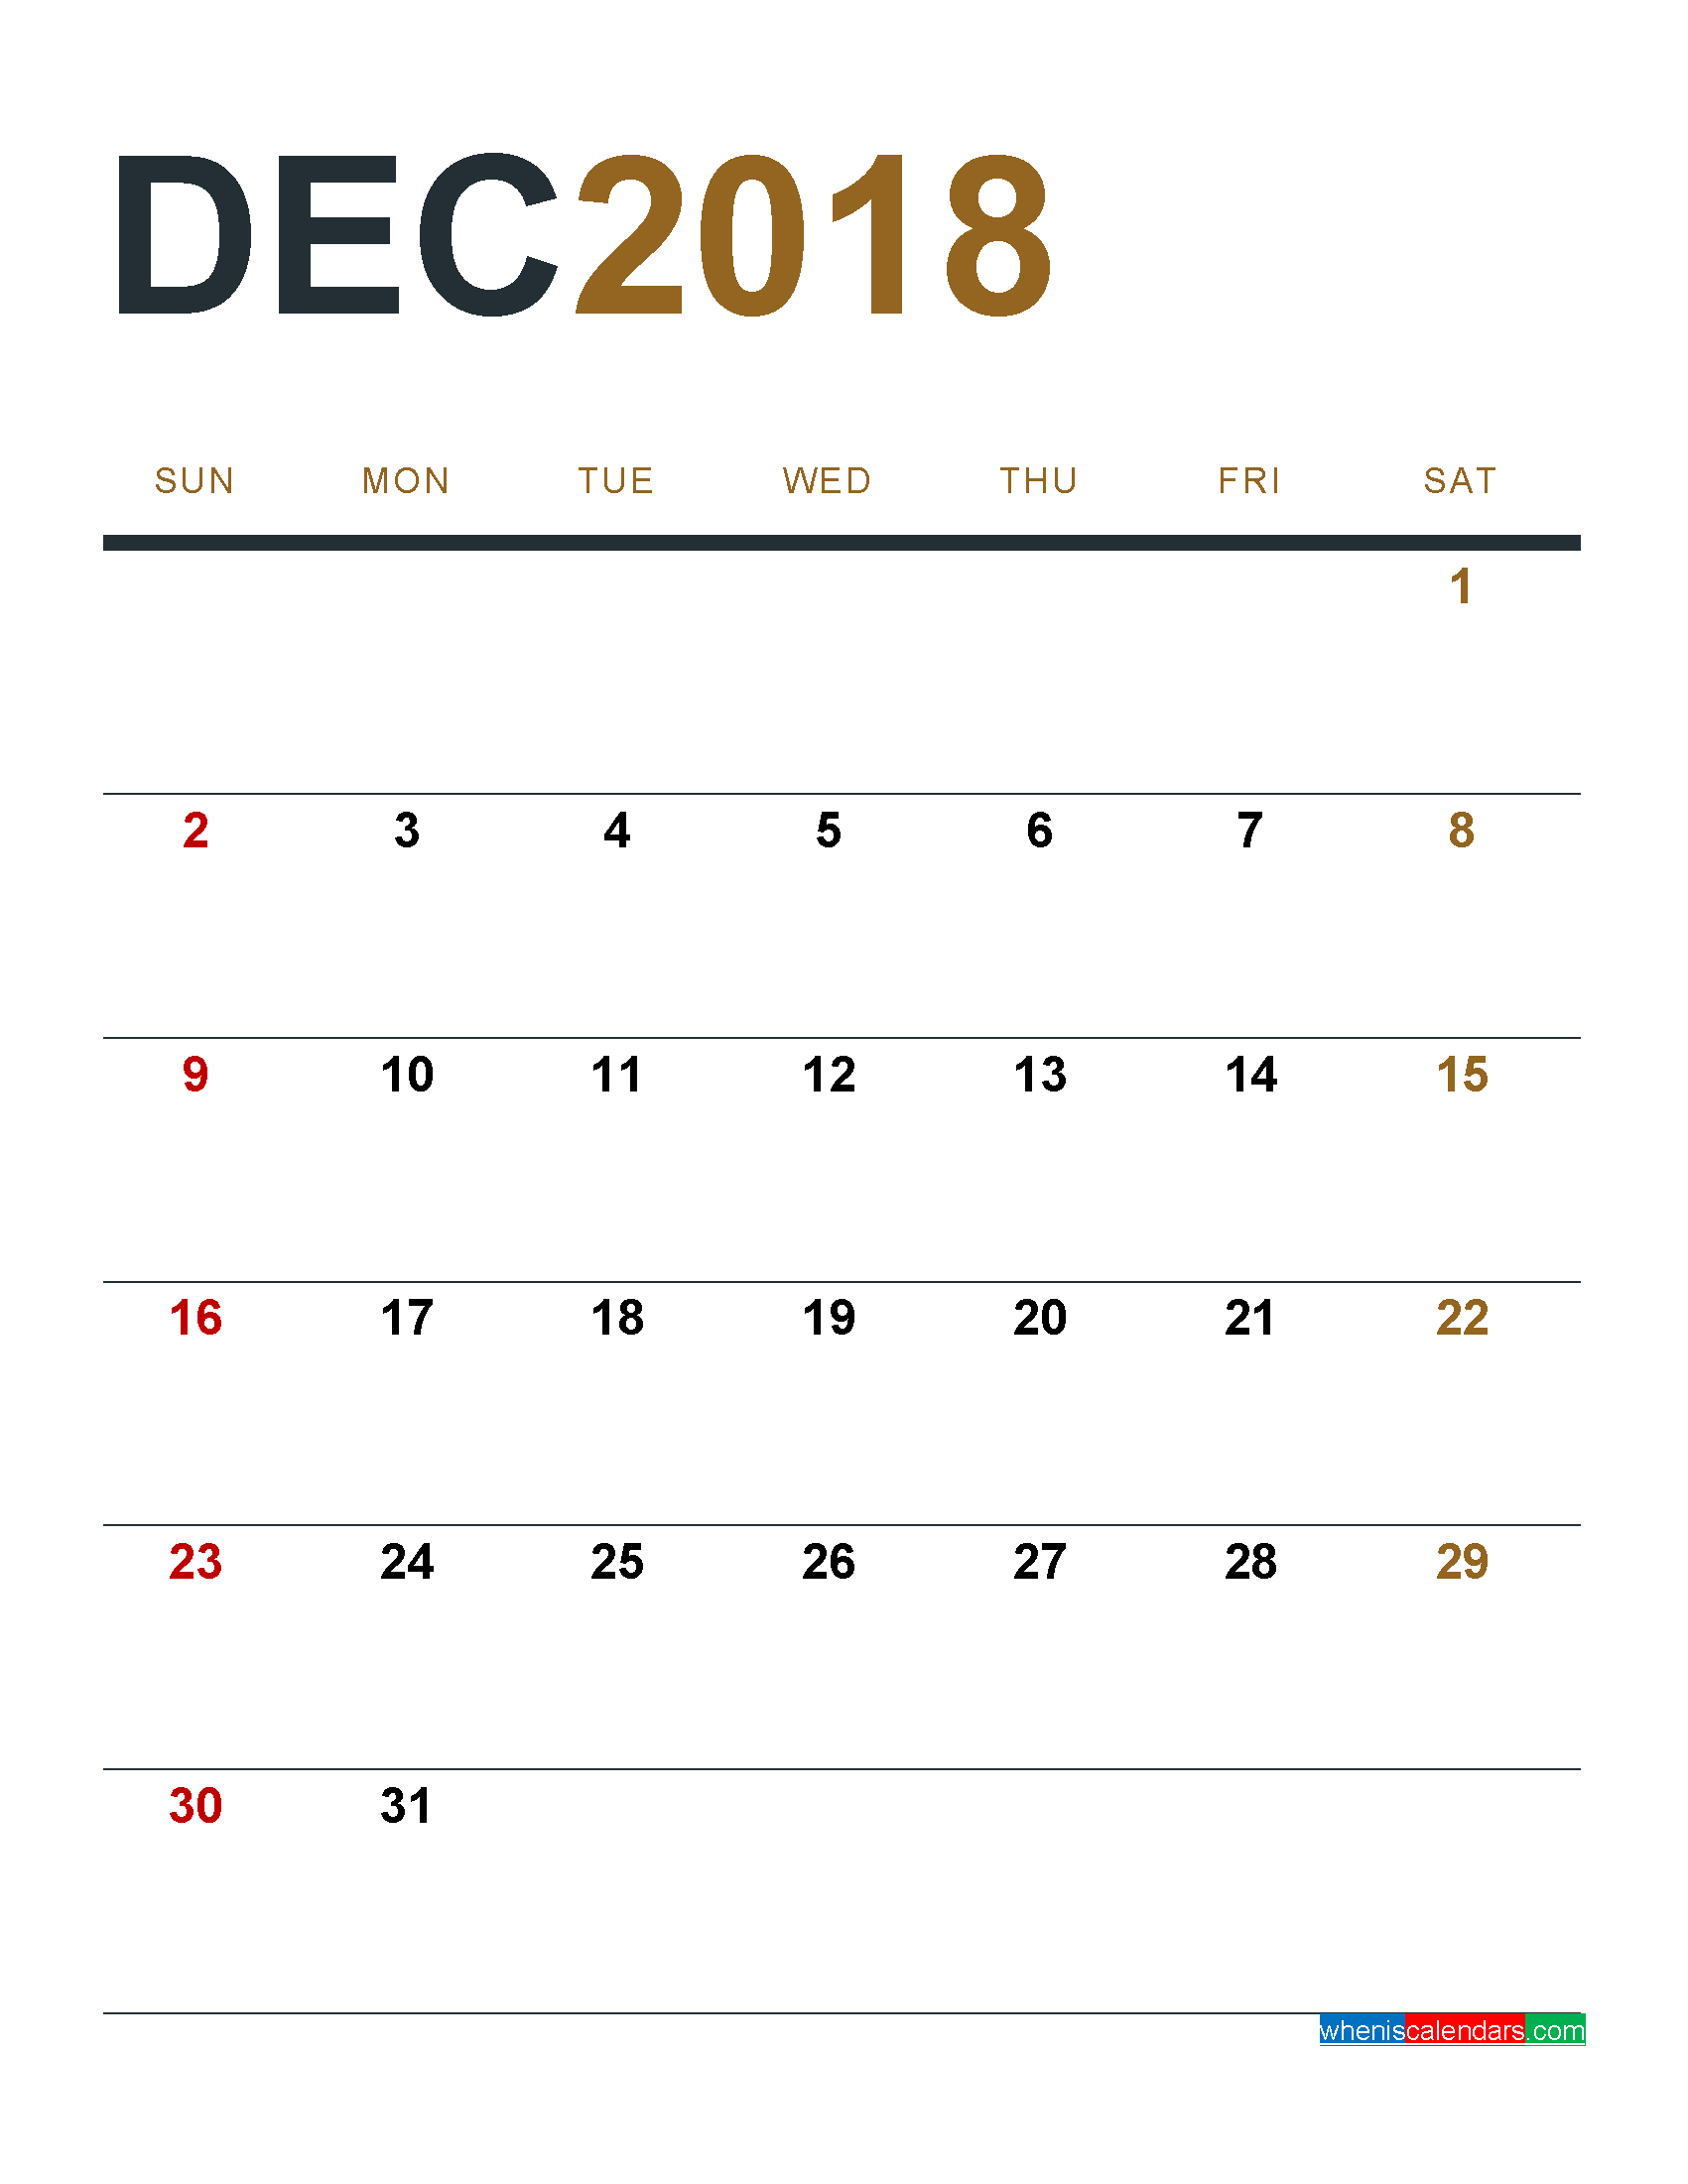 December 2018 Calendar Printable As Pdf And Image 1 Month 1 Page